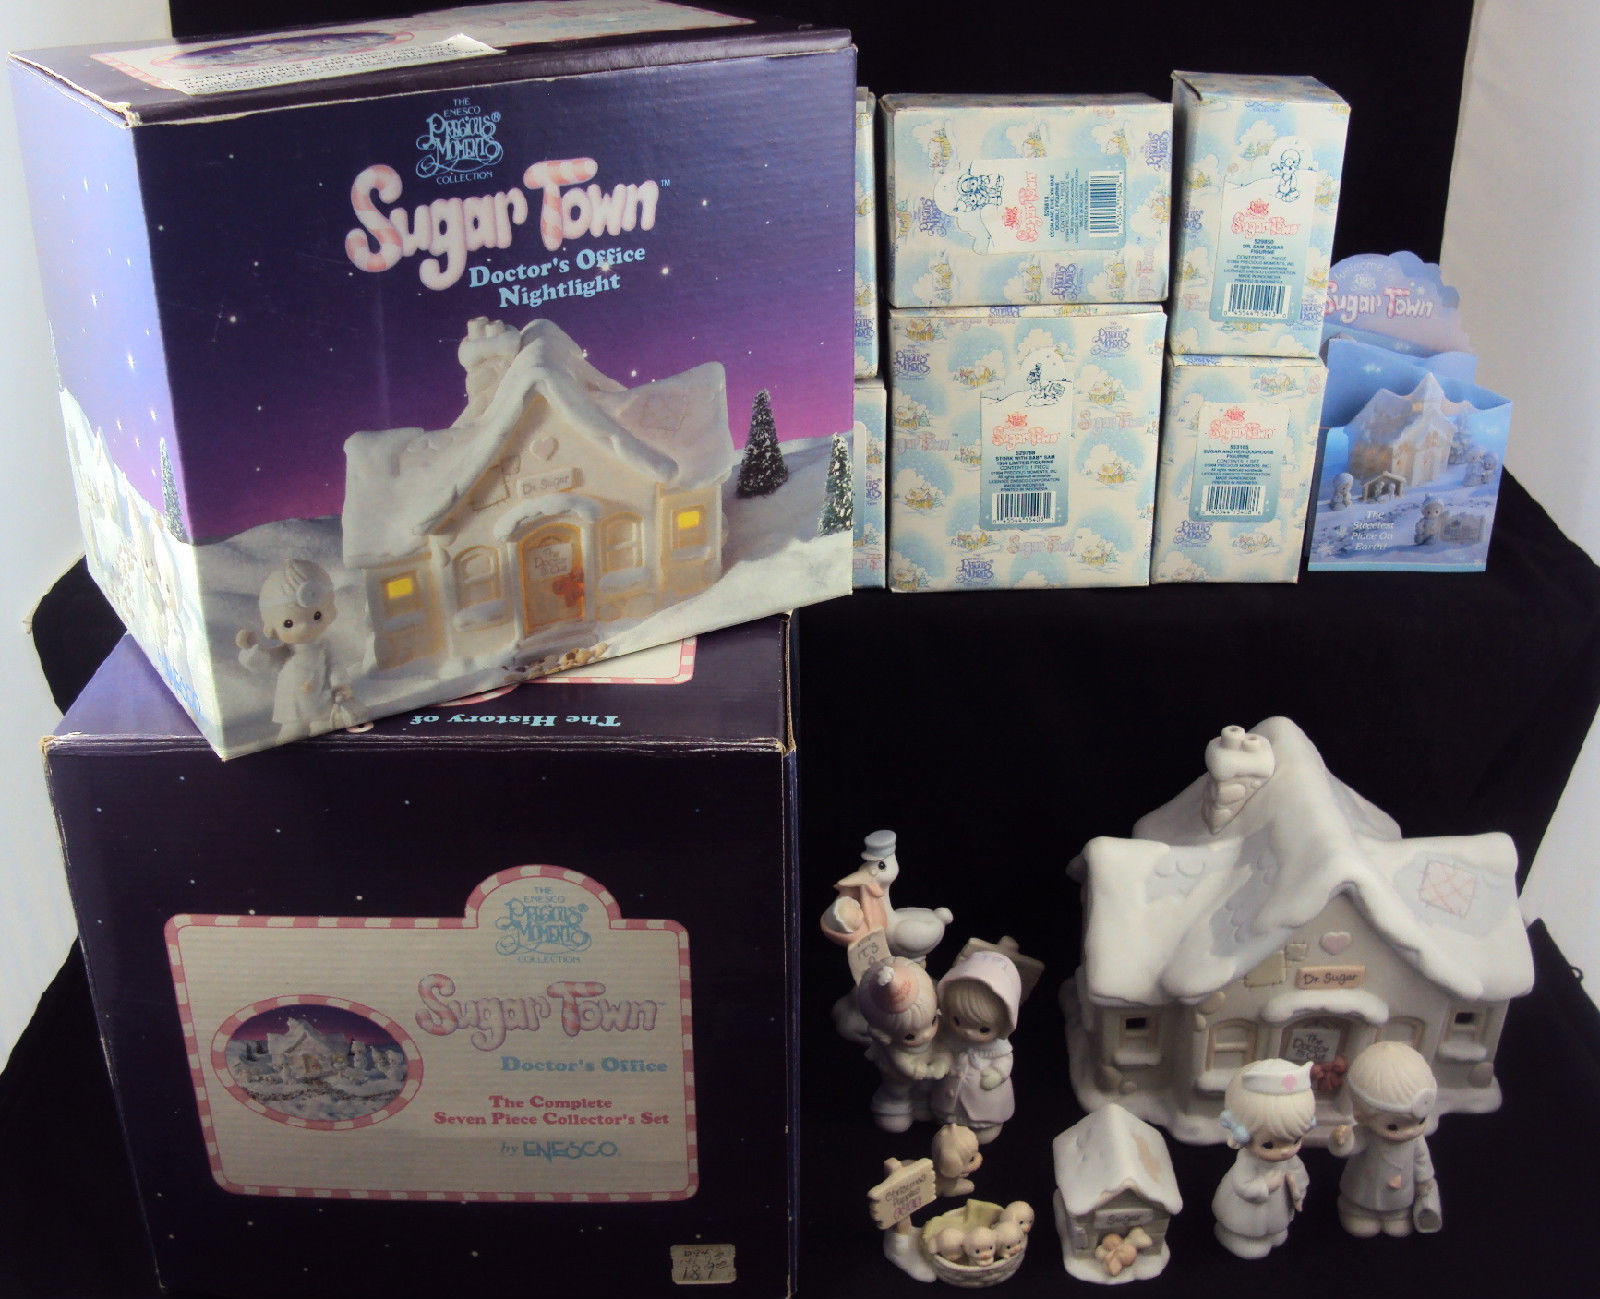 Primary image for Precious Moments NIGHT LIGHT ~ Sugar Town Doctor's Office ~ Complete Set w/Boxes